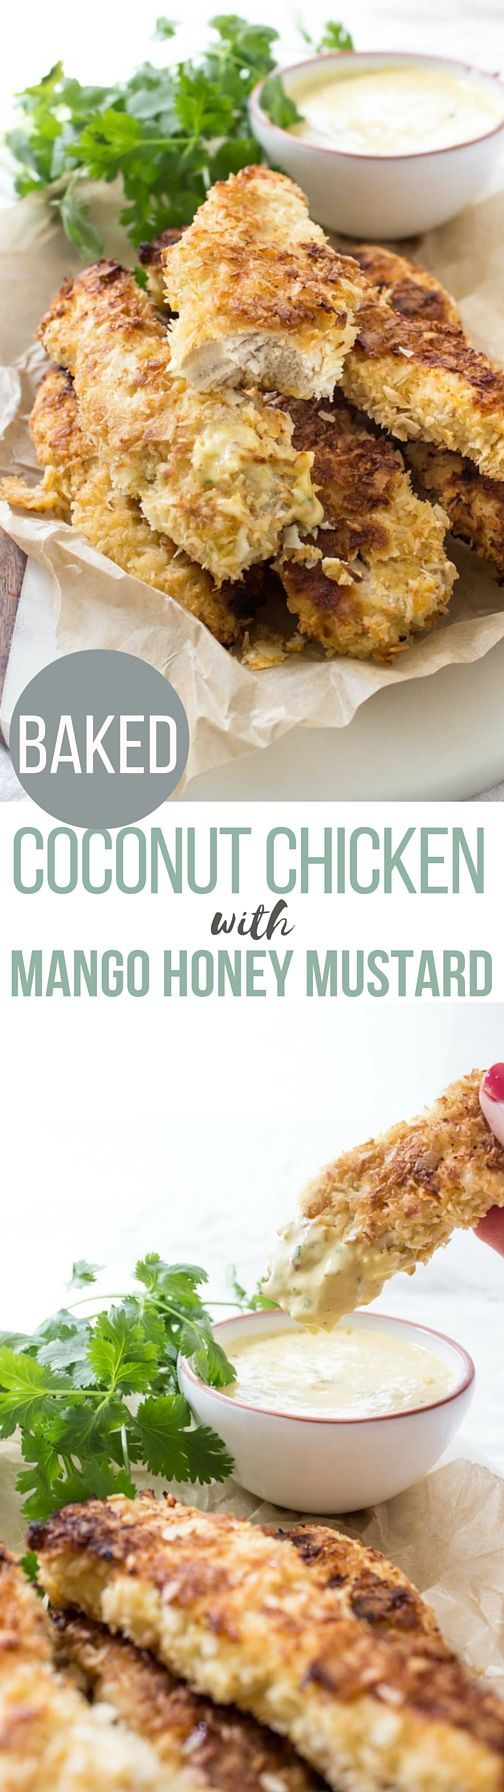 Paleo Coconut Chicken Tenders with Mango Honey Mustard! This easy paleo meal is ready in just 30 minutes!